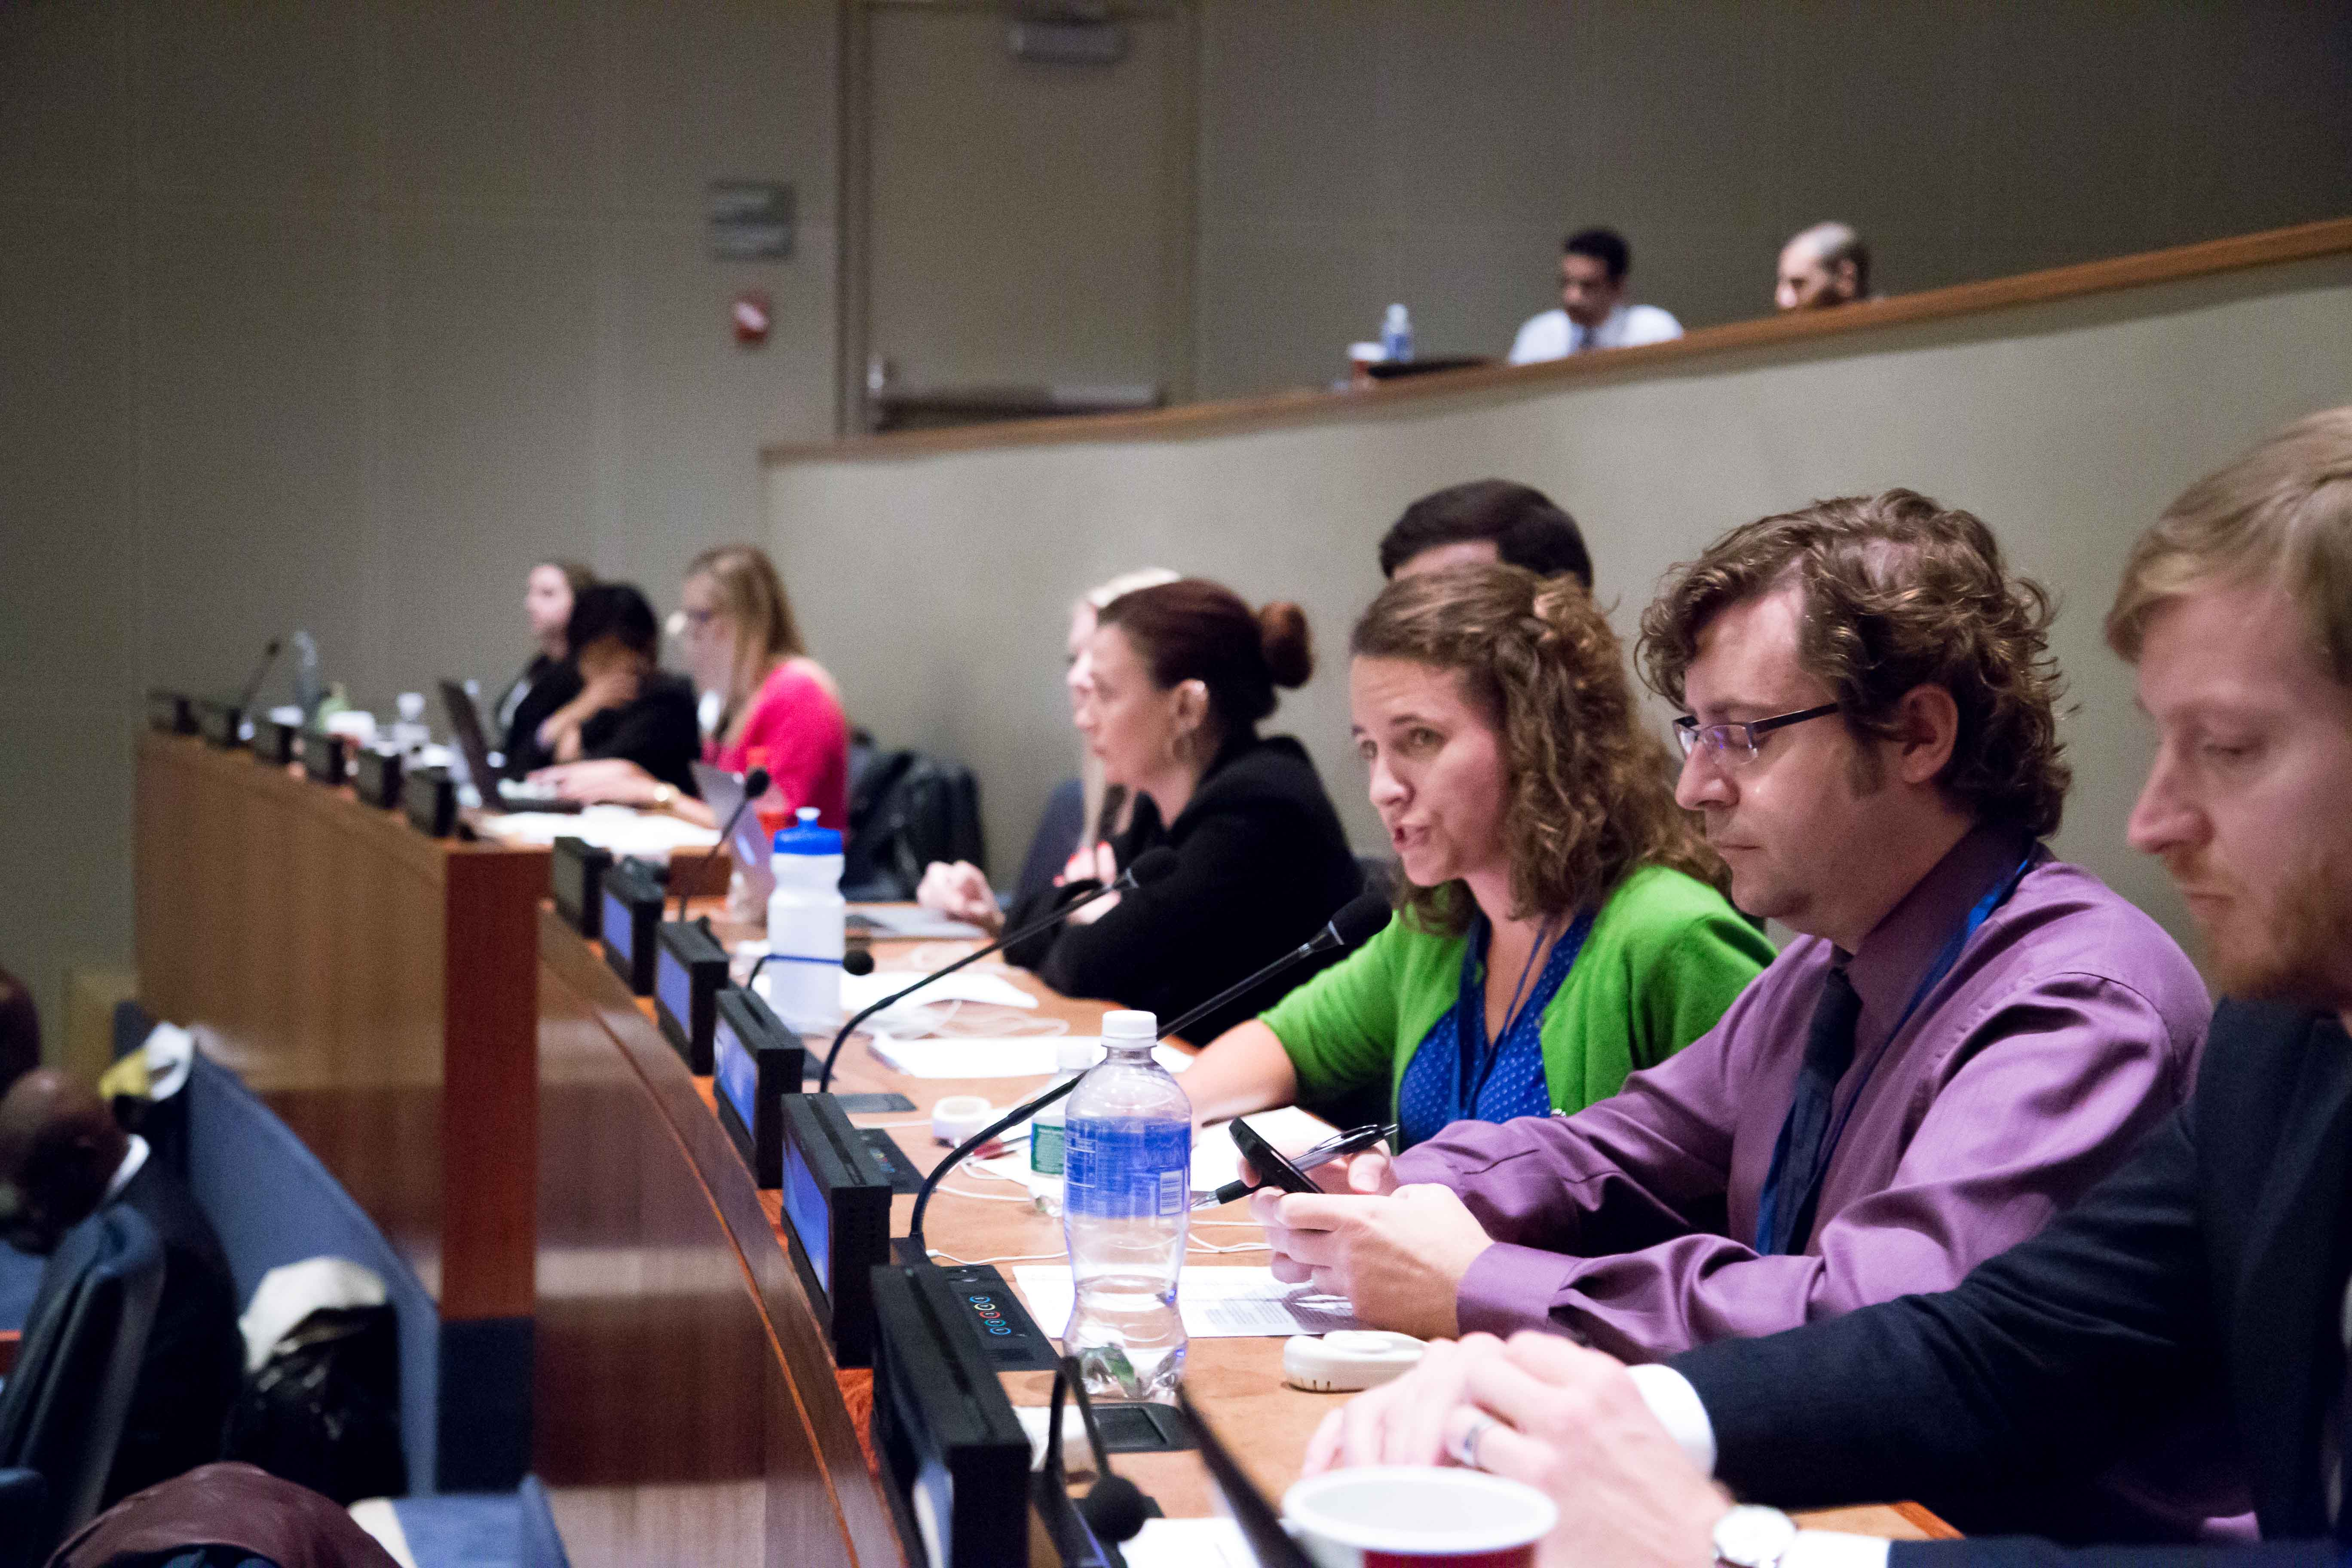 Dr. Emily Welty, Assistant Professor and Director of Peace and Justice Studies at Pace University New York City, challenges the UN General Assembly First Committee to take the gendered dimensions of disarmament more seriously.